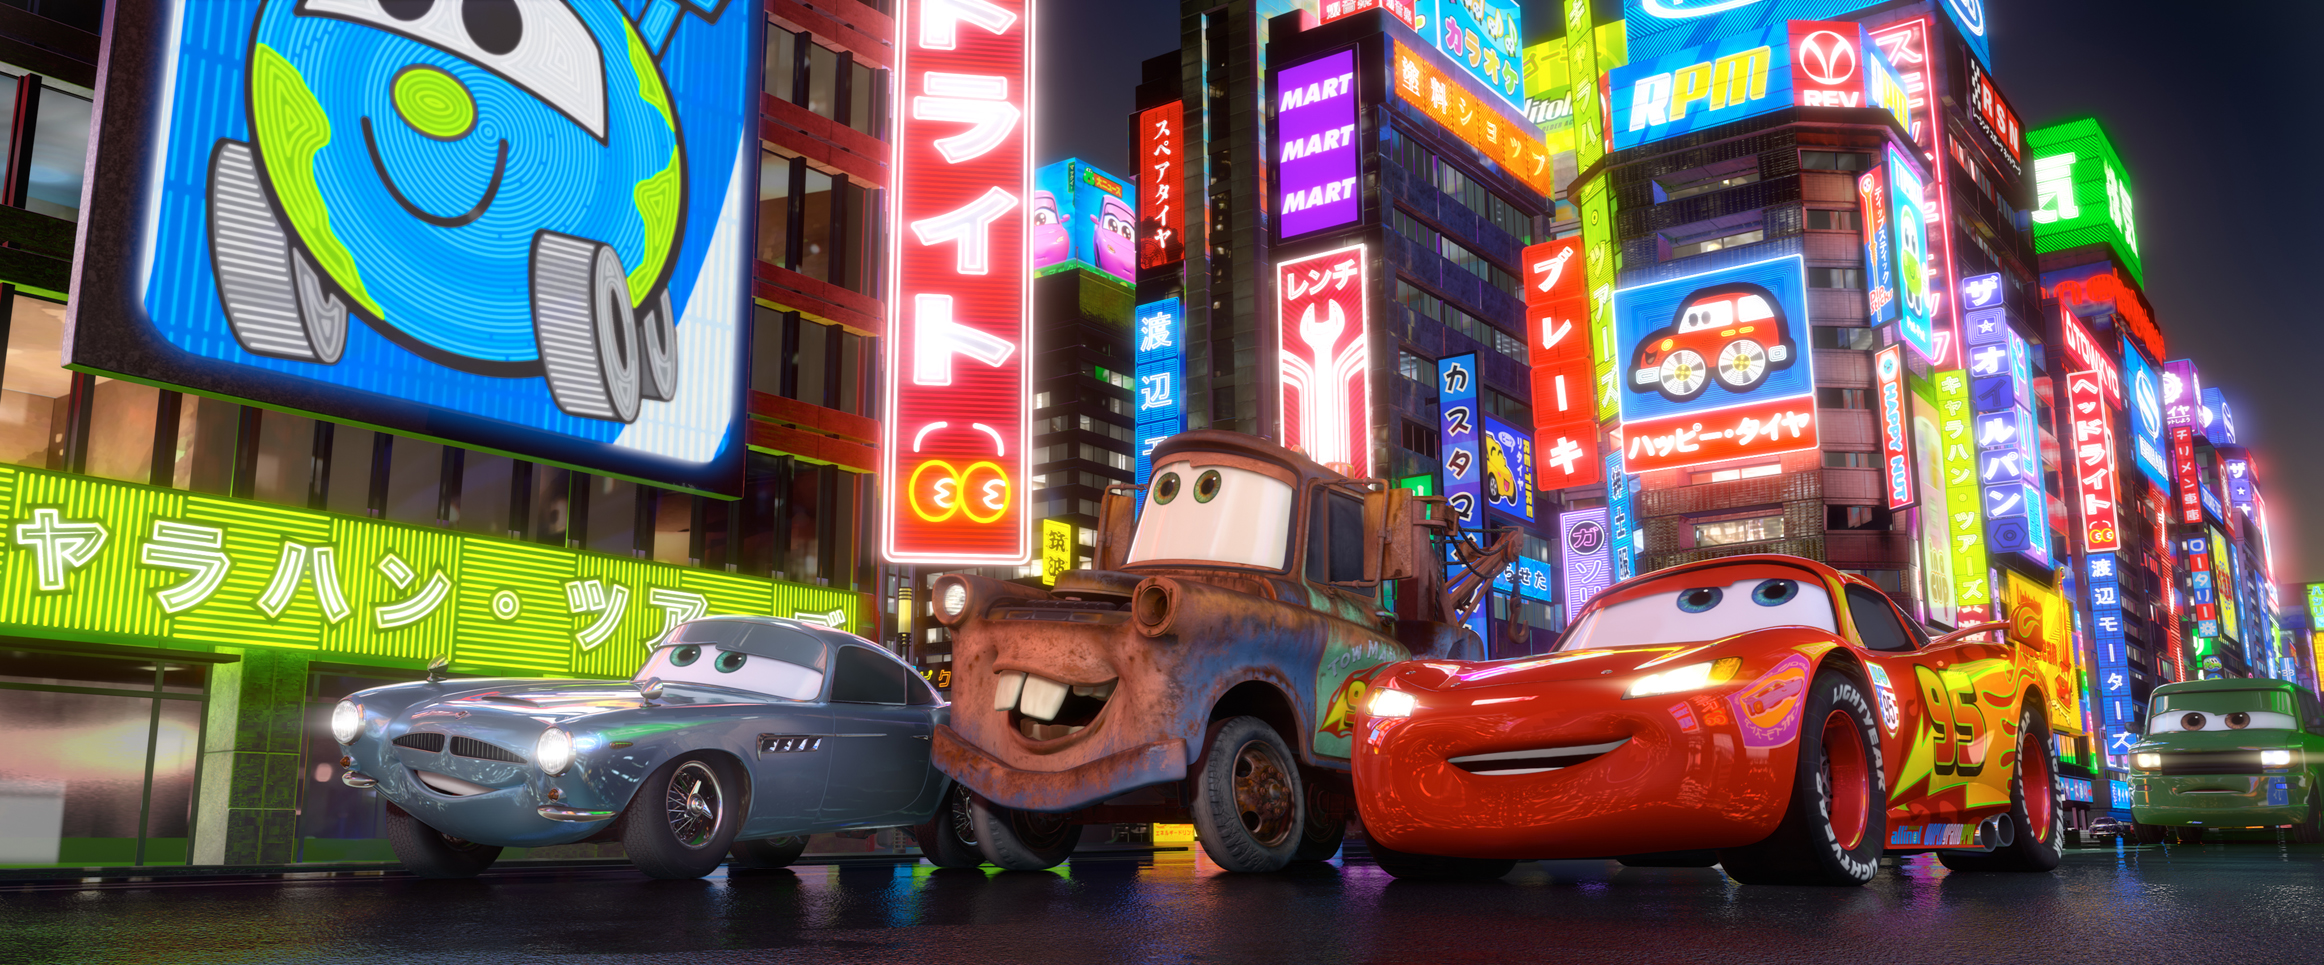 CARS 2 Lightning Mater Finn